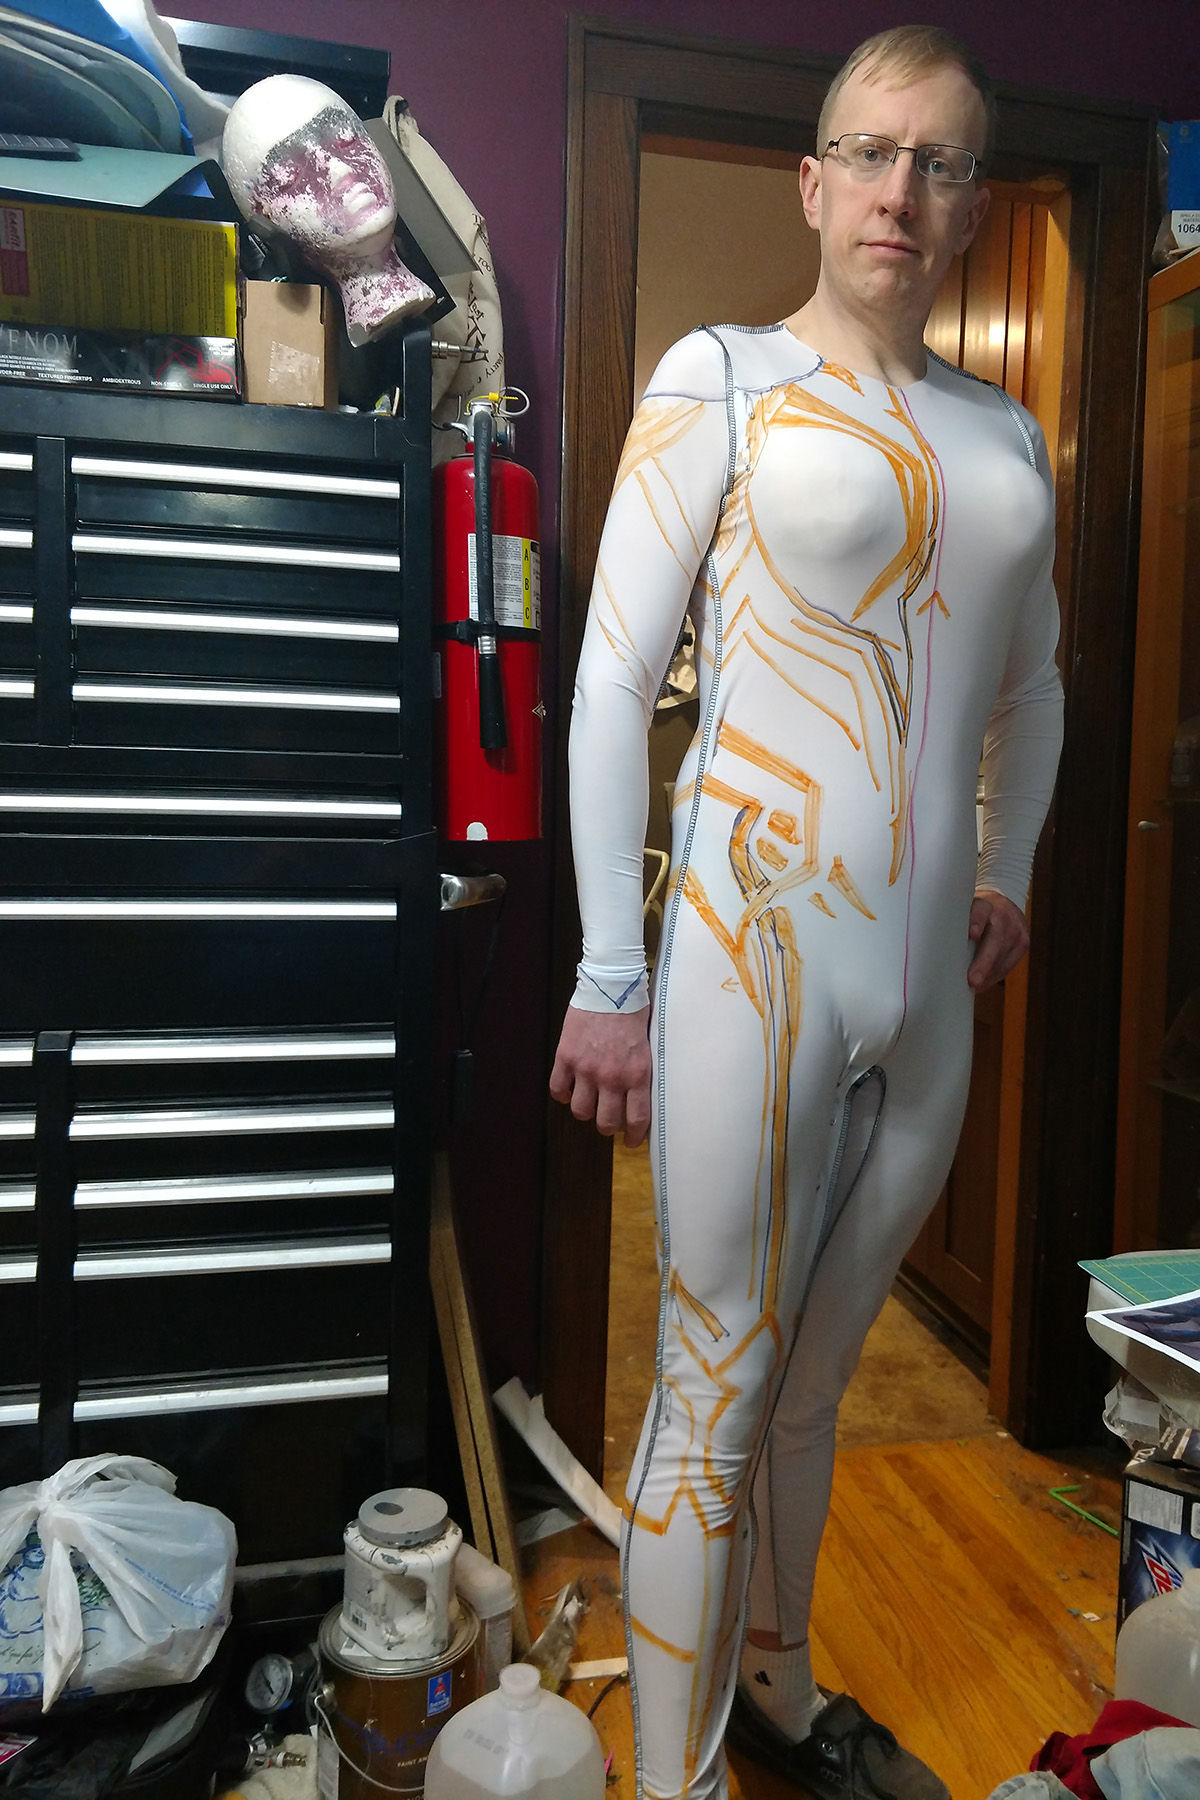 A blonde man with glasses wearing a full body white spandex bodysuit, with orange designs drawn on it.